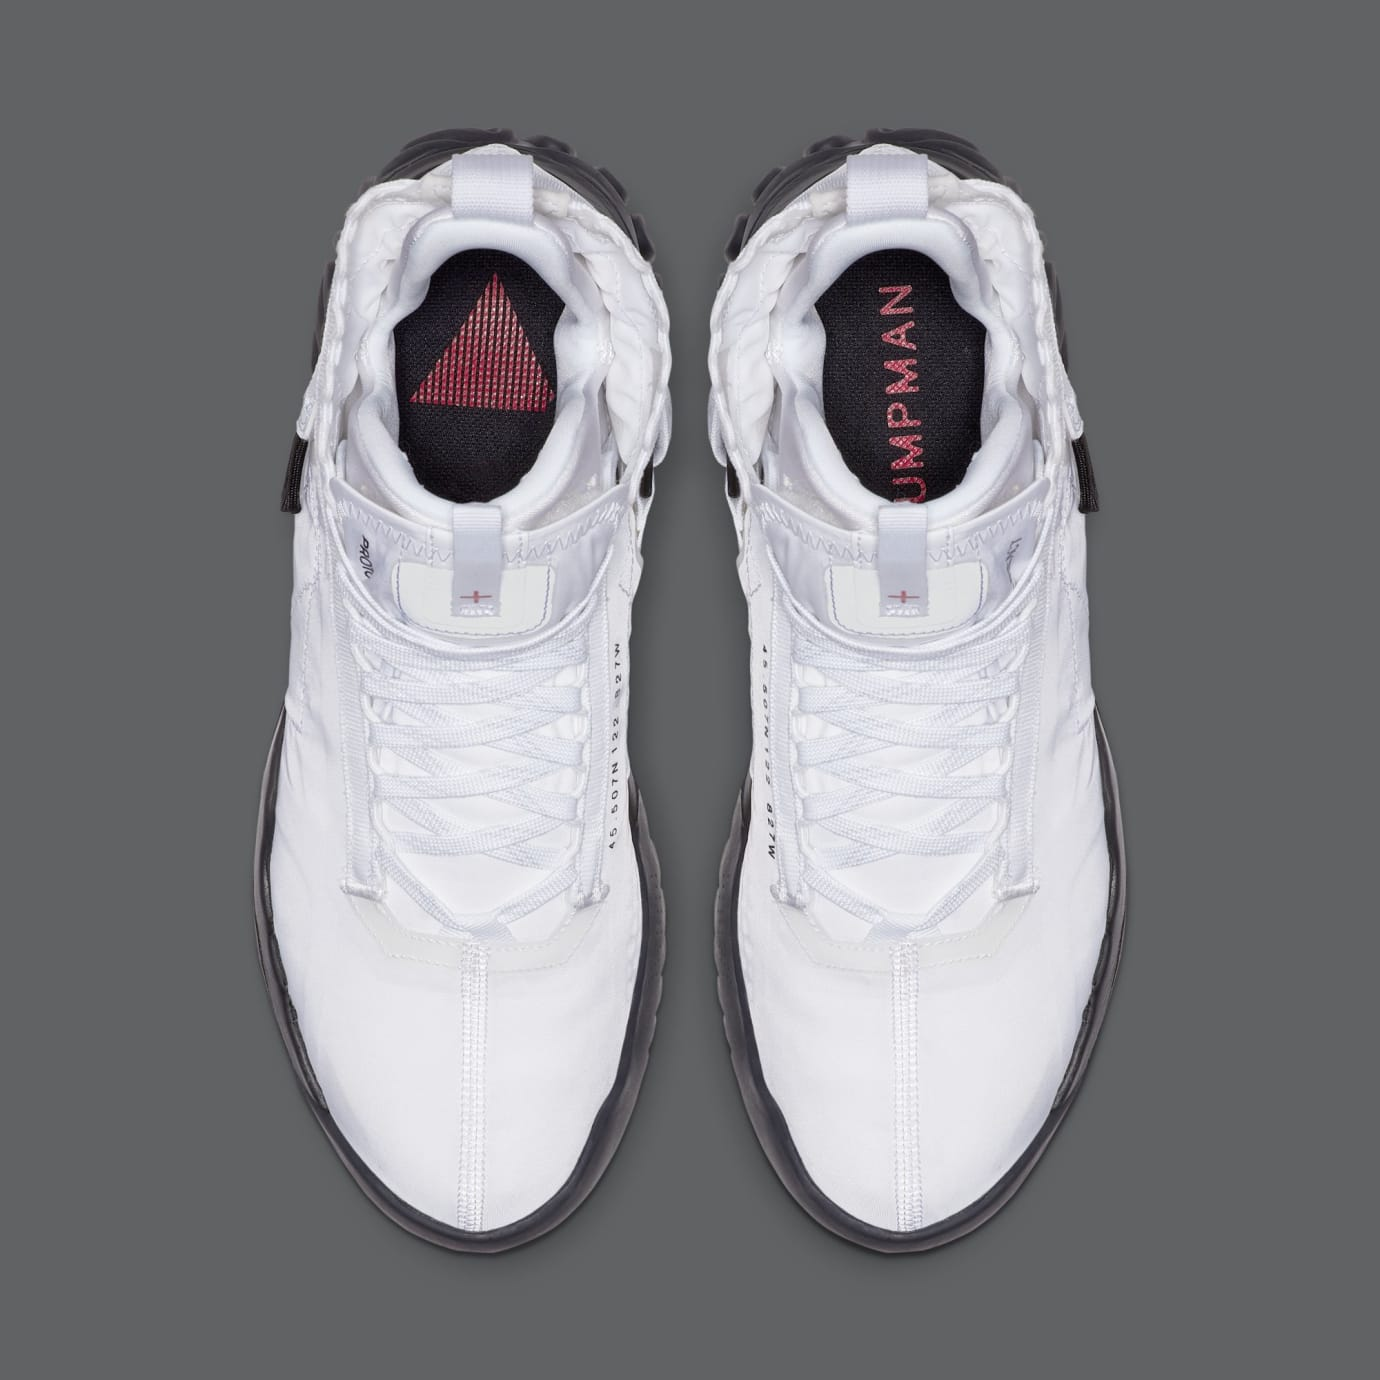 Jordan Proto React 'White/Black' BV1654-100 (Top)